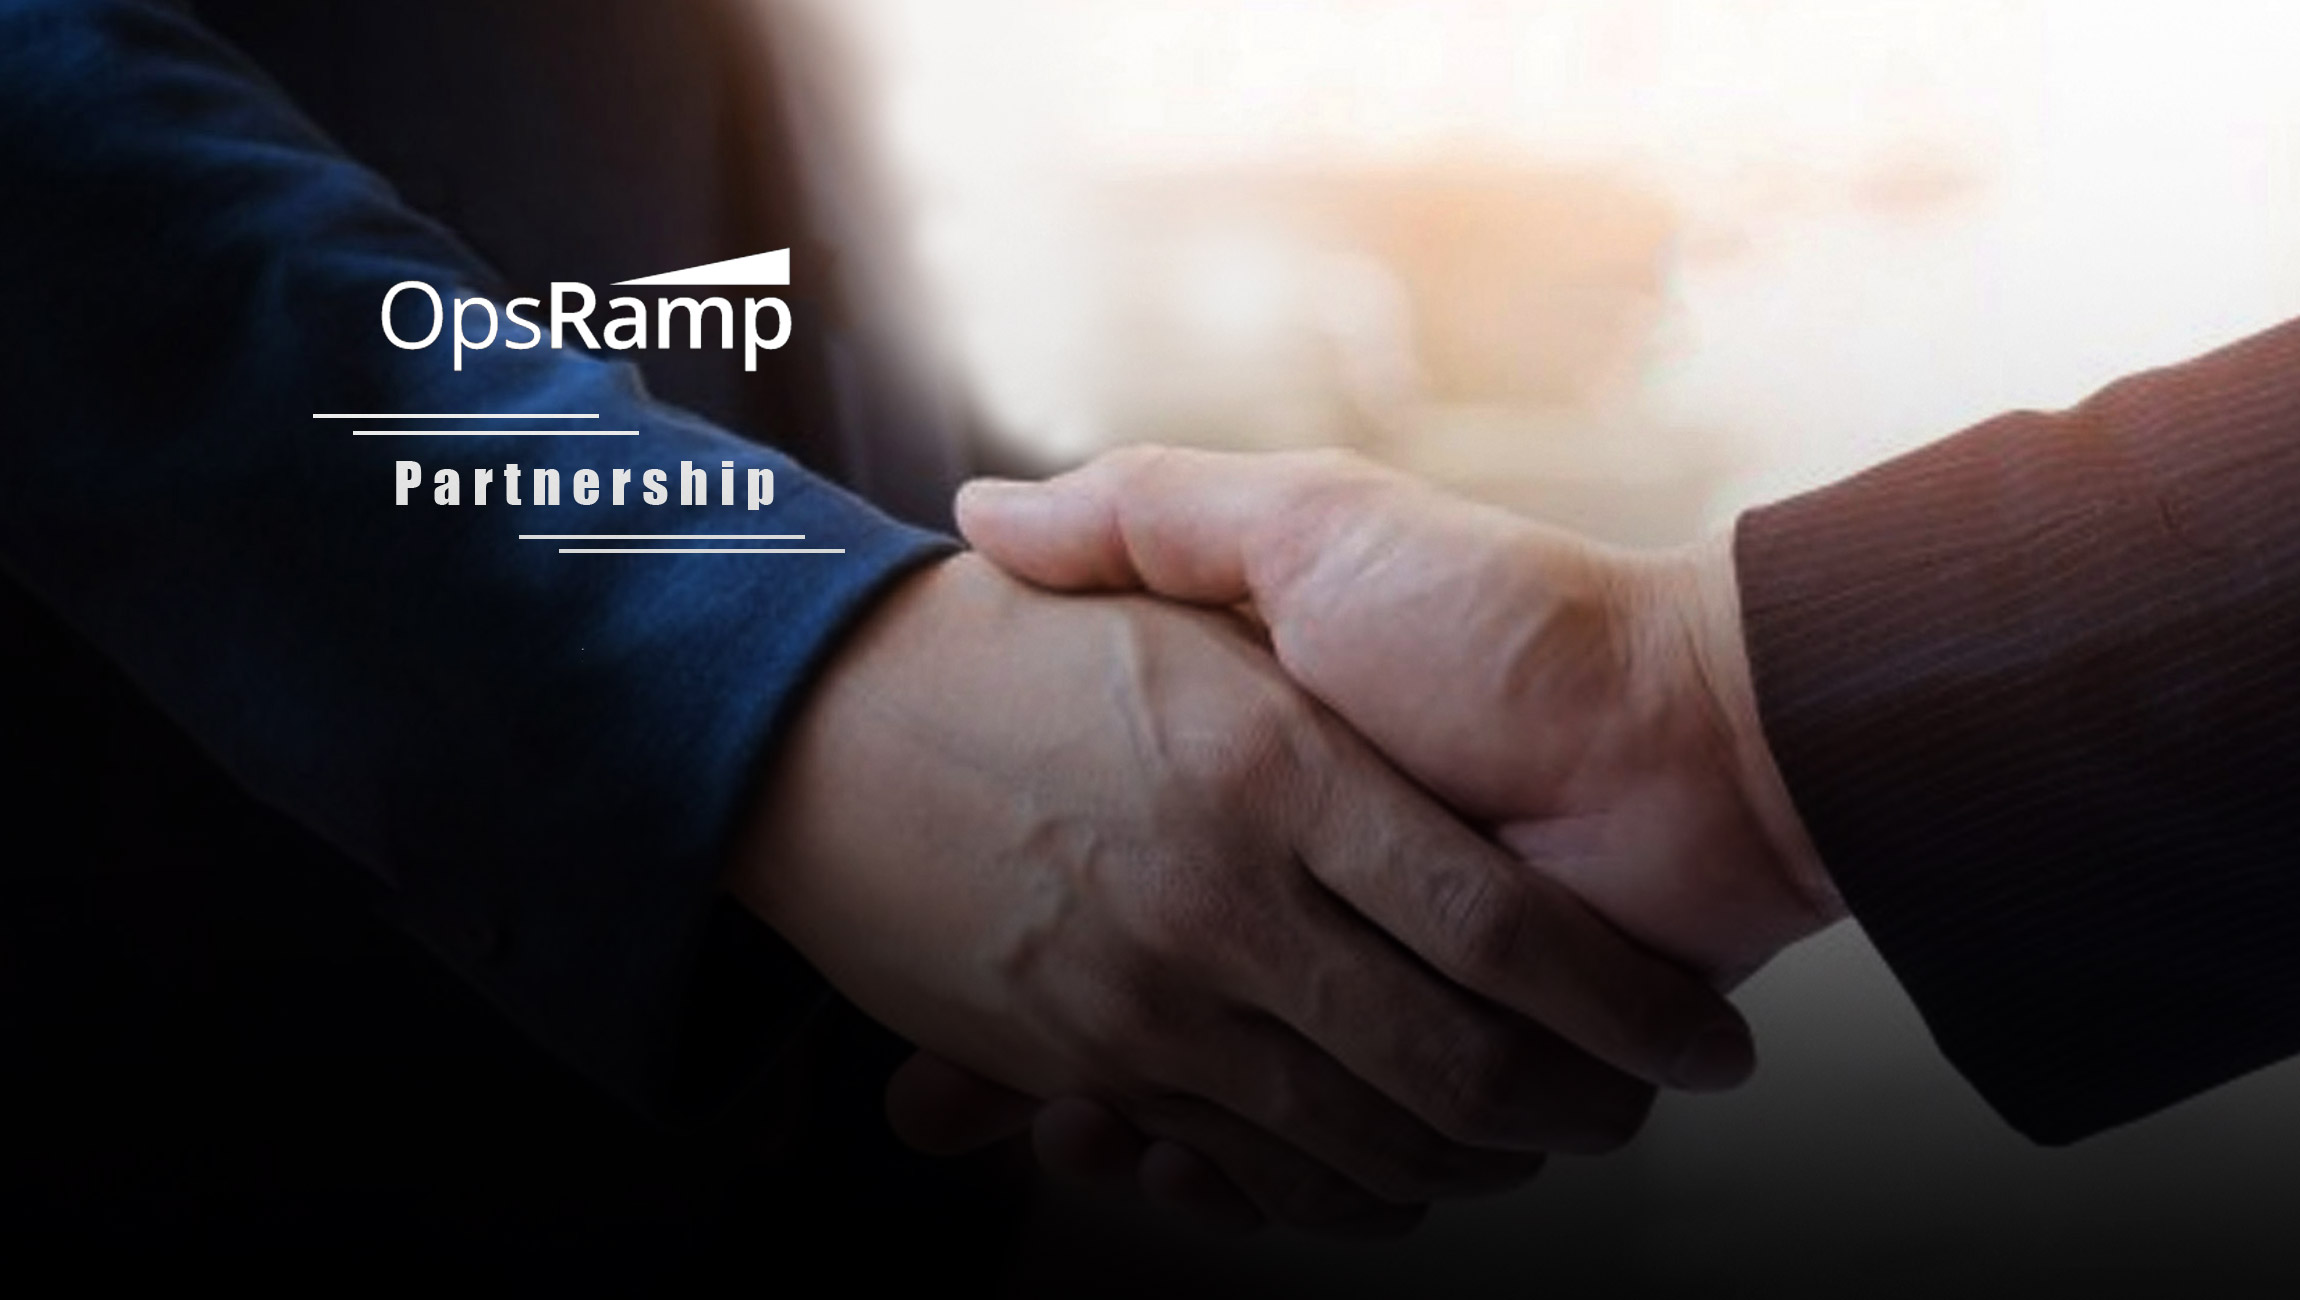 OpsRamp Partners with Google Cloud to Modernize IT Operations Management